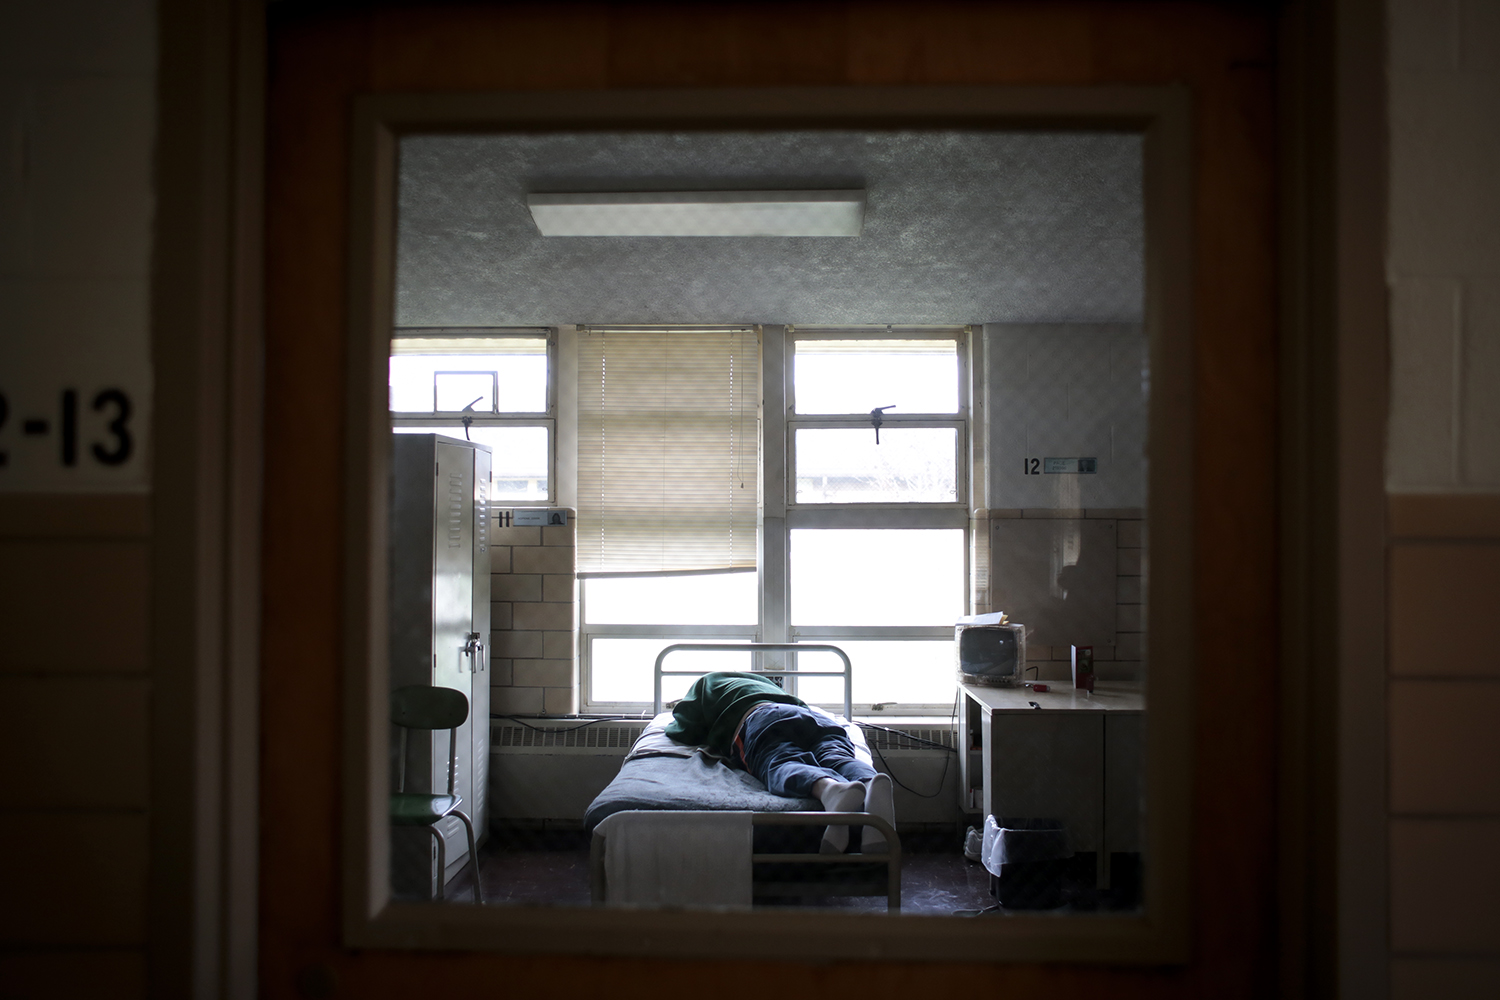 An inmate rests on his bed in his room on Monday, Dec. 1, 2014 at the Lakeland Men's Correctional Facility in Coldwater, MI. Tim Galloway for Al Jazeera America